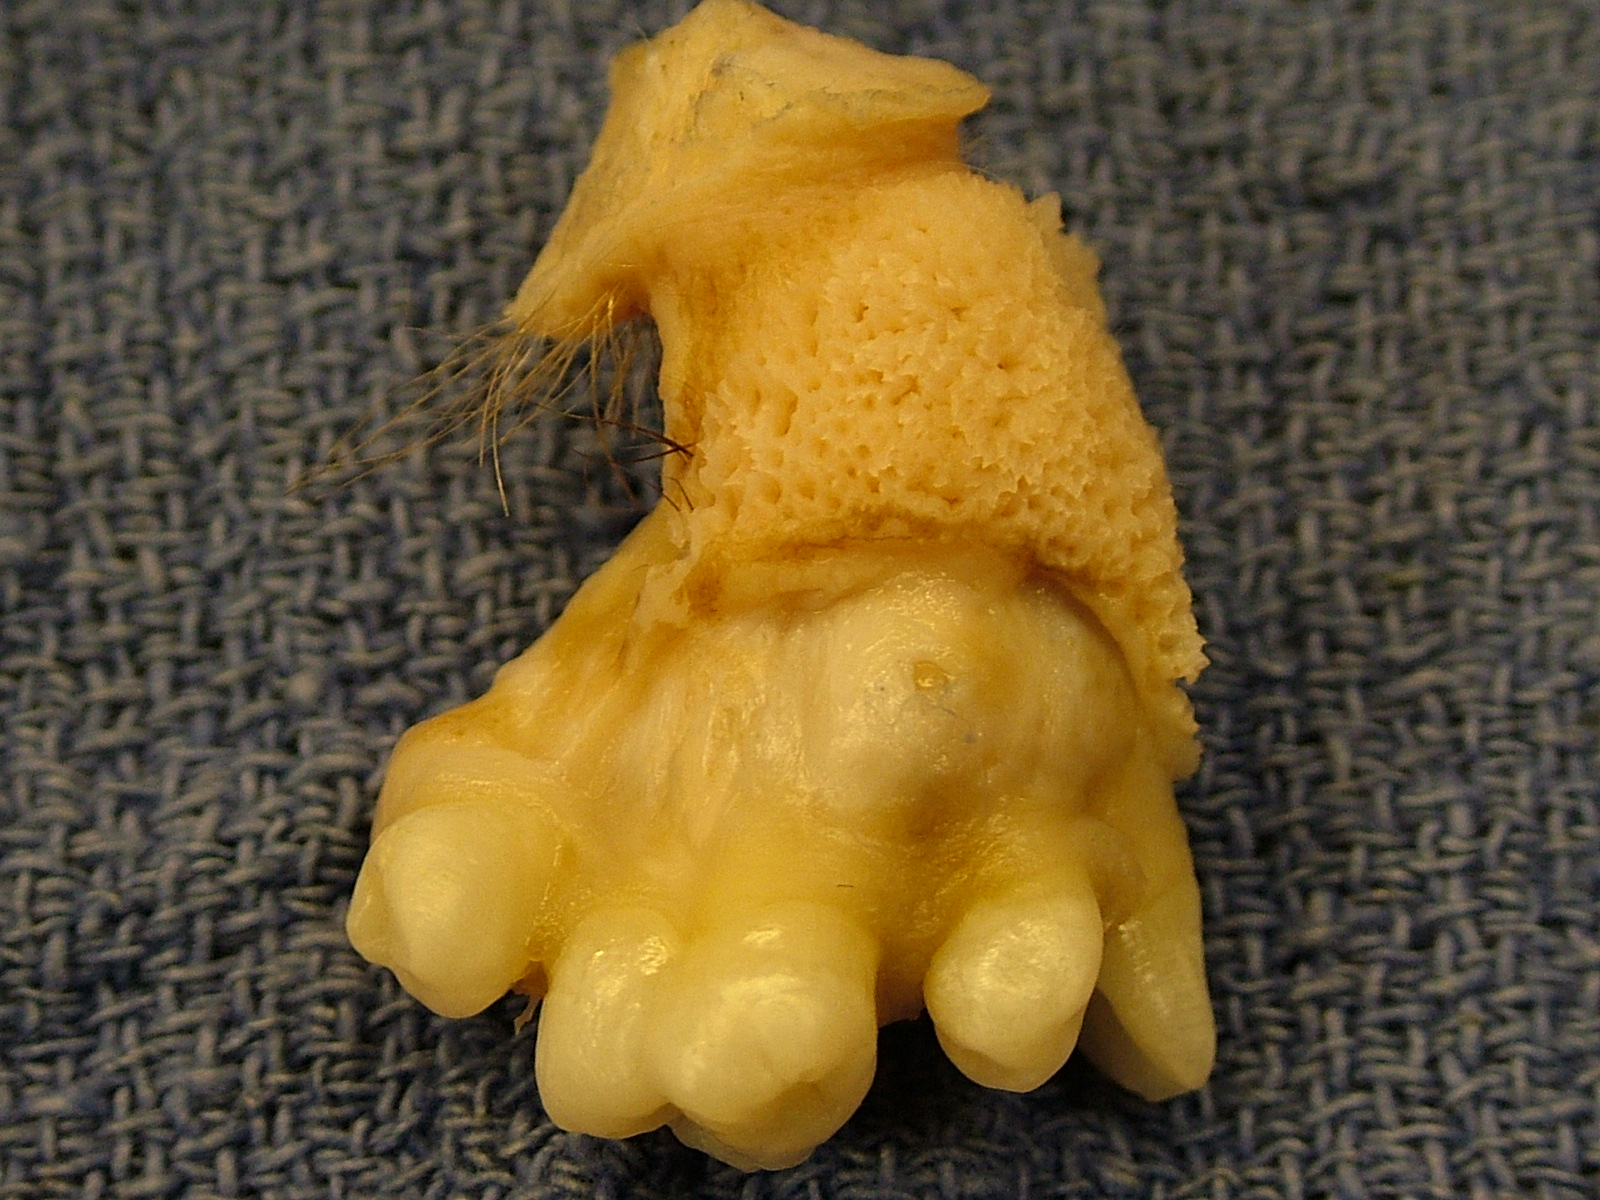 extracted from a left ovary showing mature teeth  skin and hairOvary Cyst With Teeth And Hair